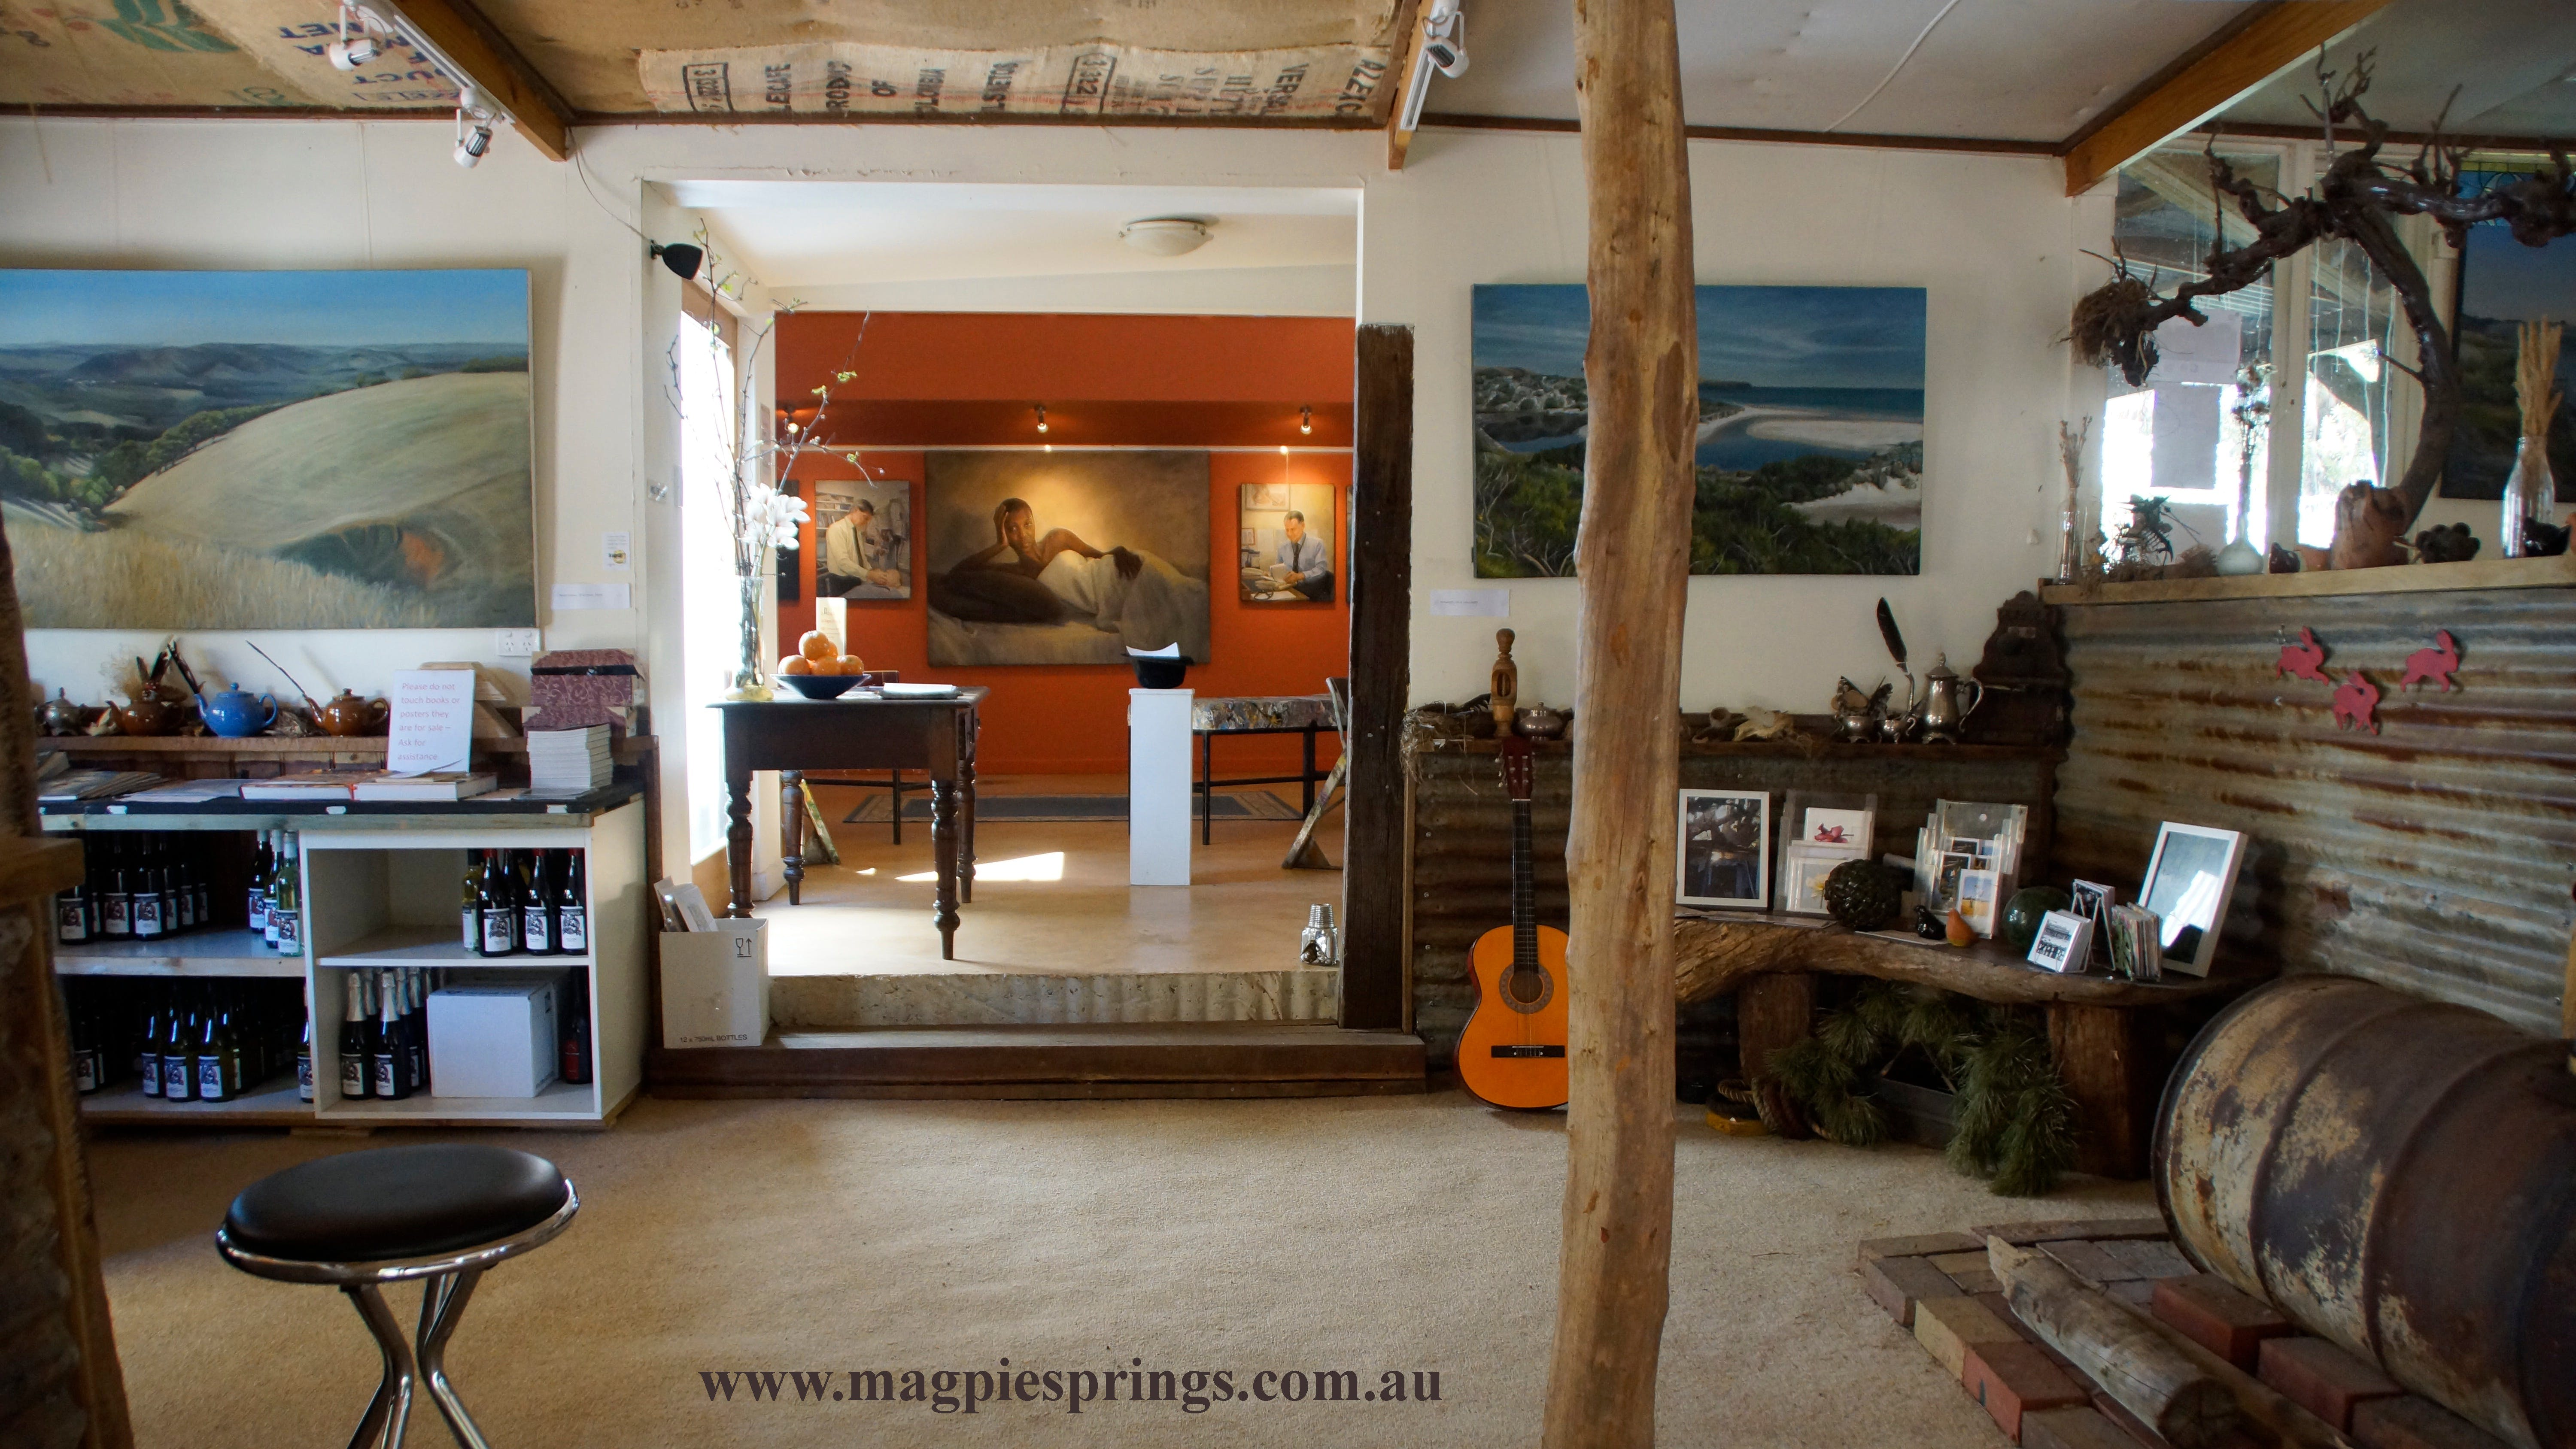 Magpie Springs gallery - Southport Accommodation